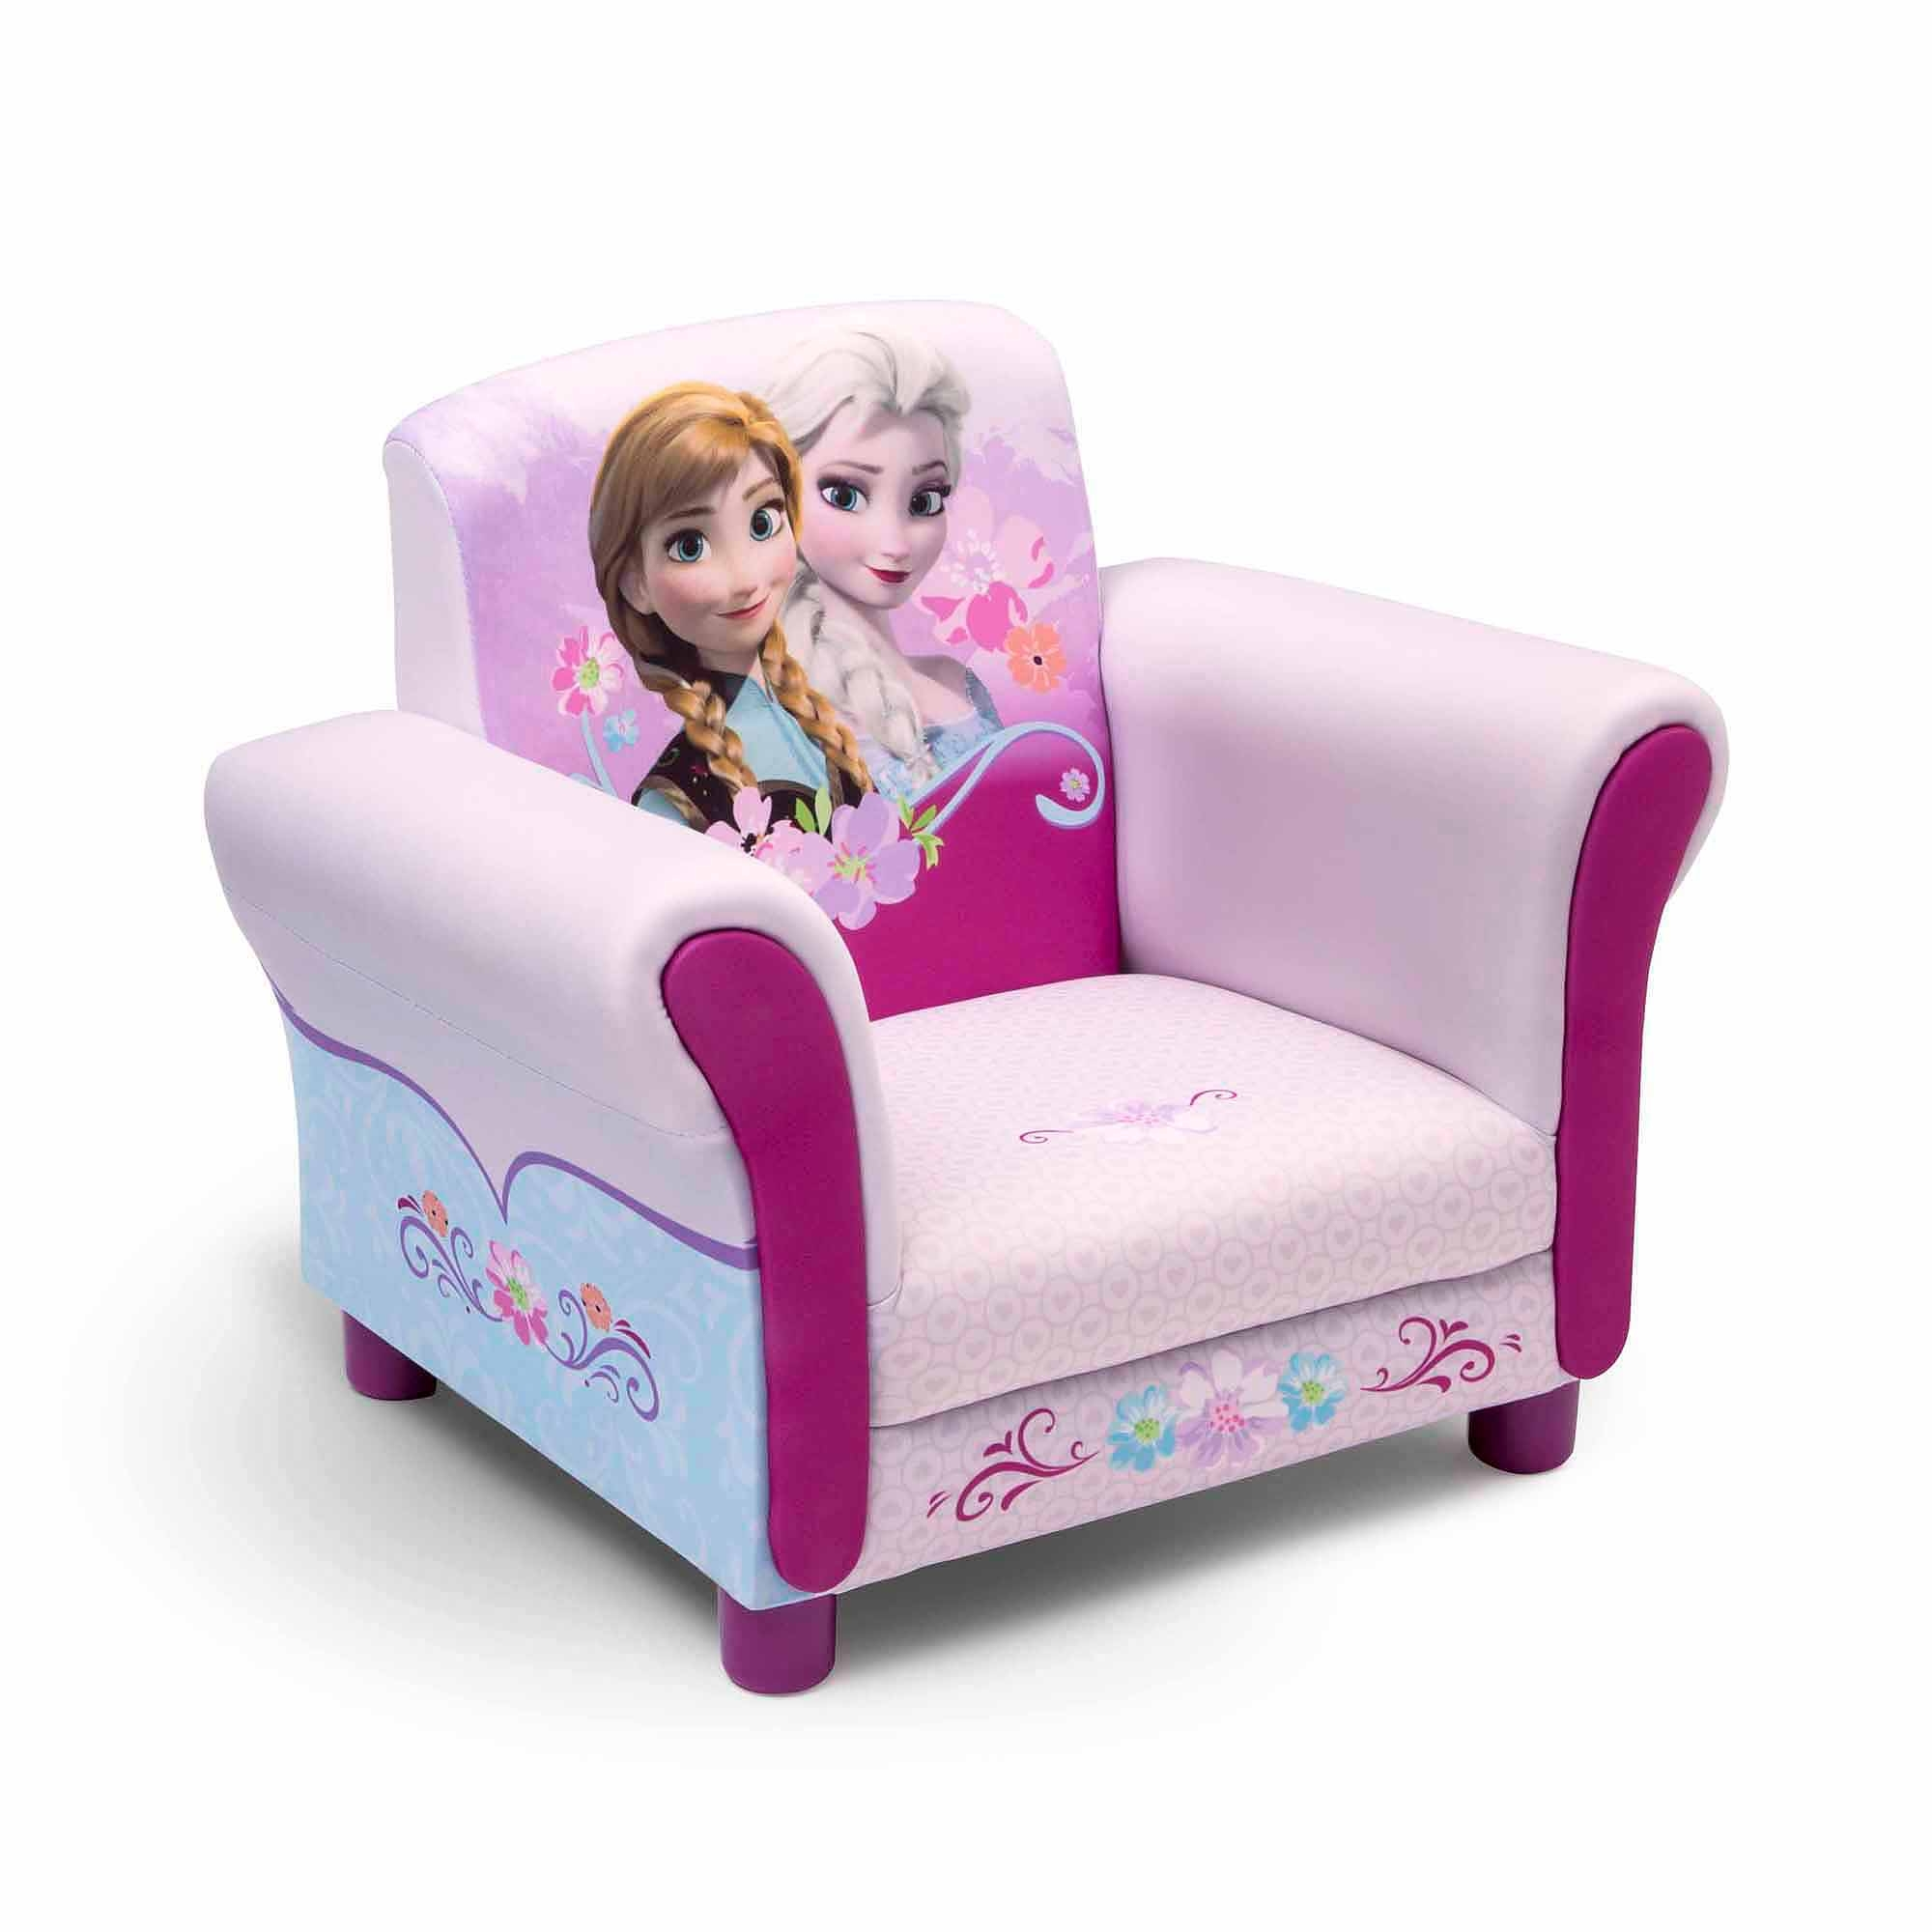 Disney Frozen Upholstered Chair Walmart Inside Disney Sofa Chairs (View 2 of 15)